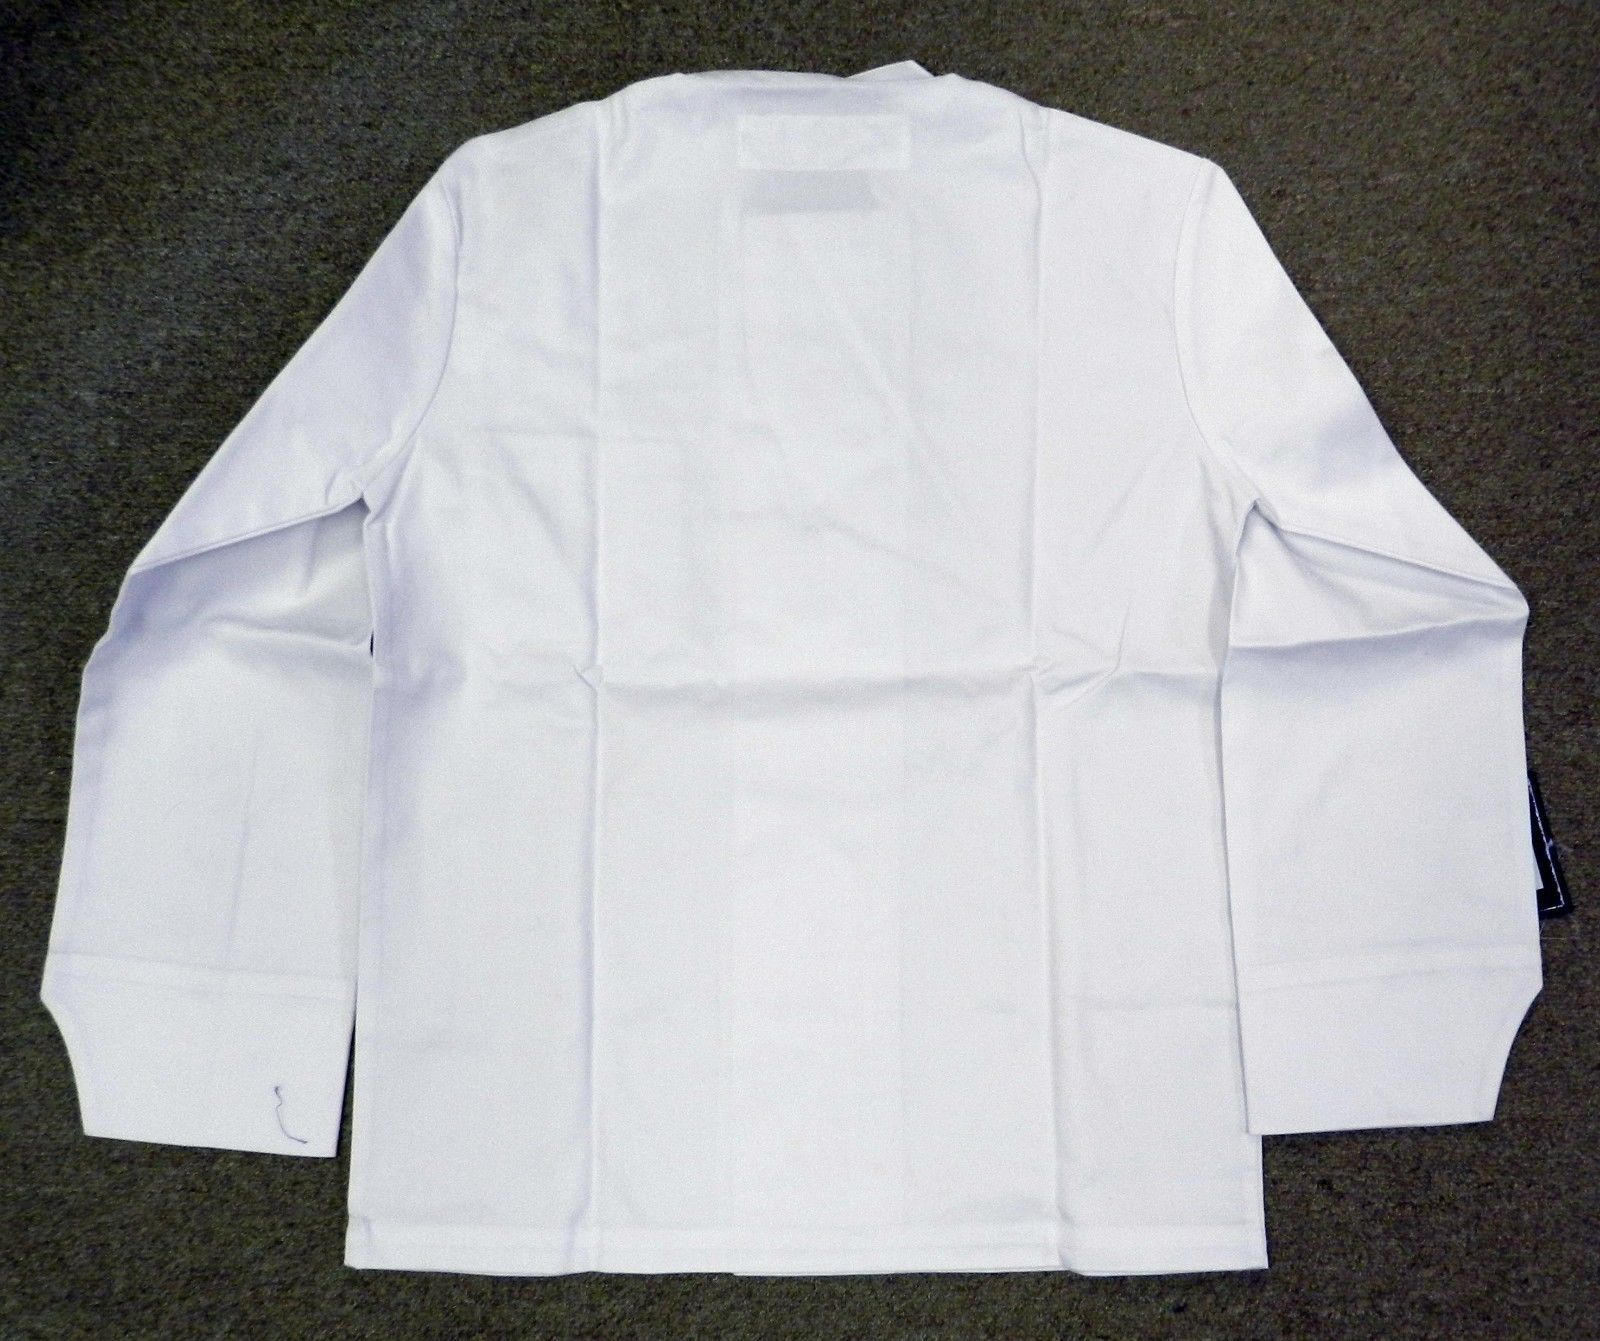 Dickies Chef Jacket 2XL CW070305B Restaurant Button Front White Uniform Coat New